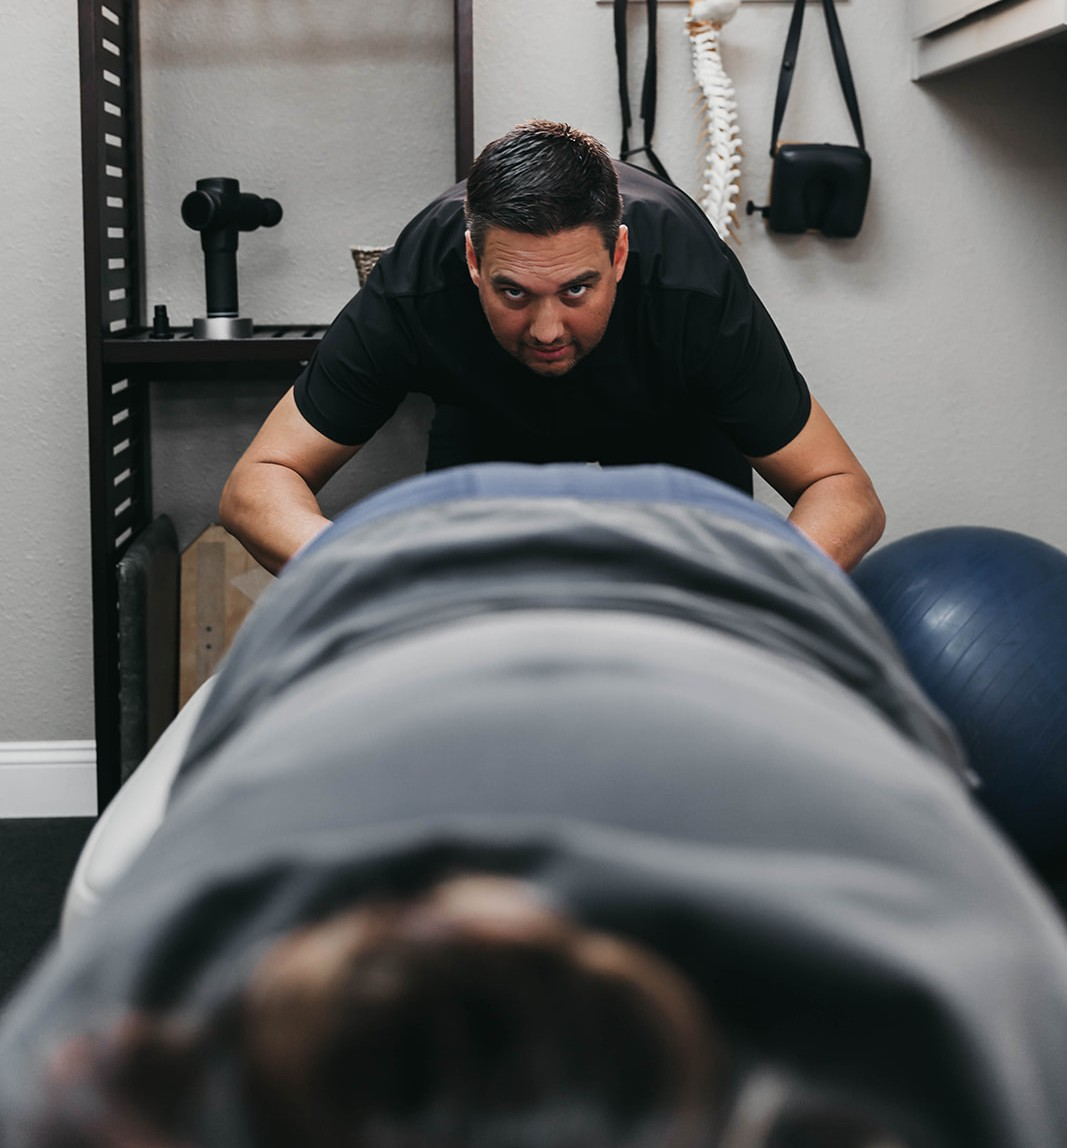 Dr. Beau looking at someone's back alignment